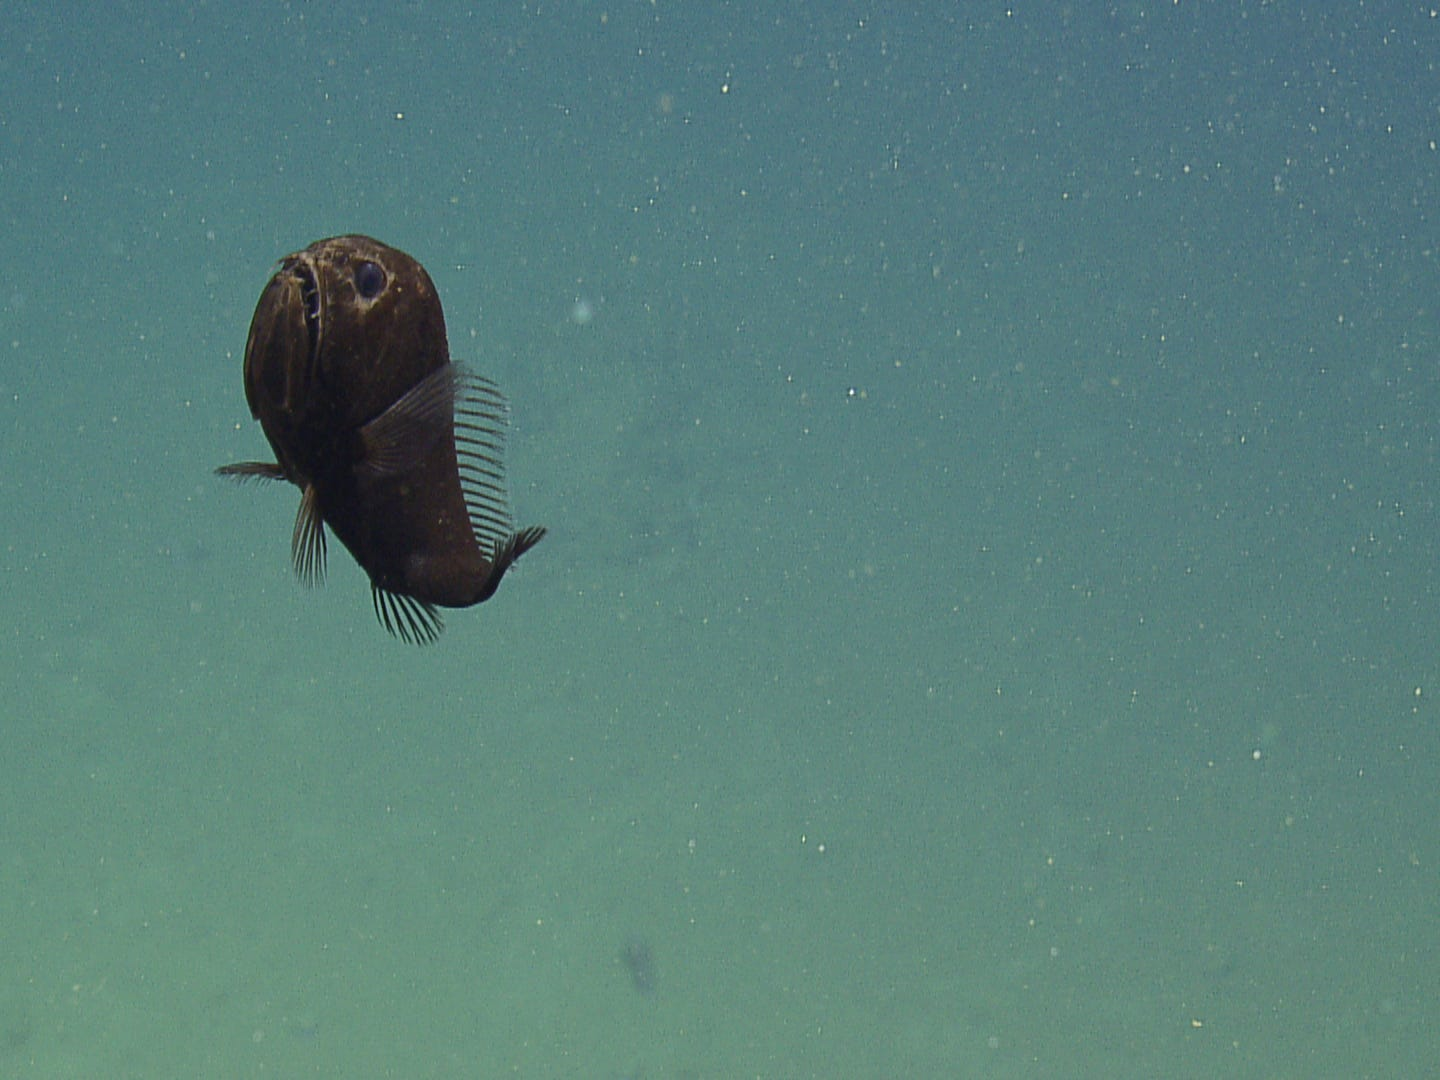 Discovered on the final dive of the expedition, this fangfish was the perfect opener to the Halloween edition of Nautilus Live.